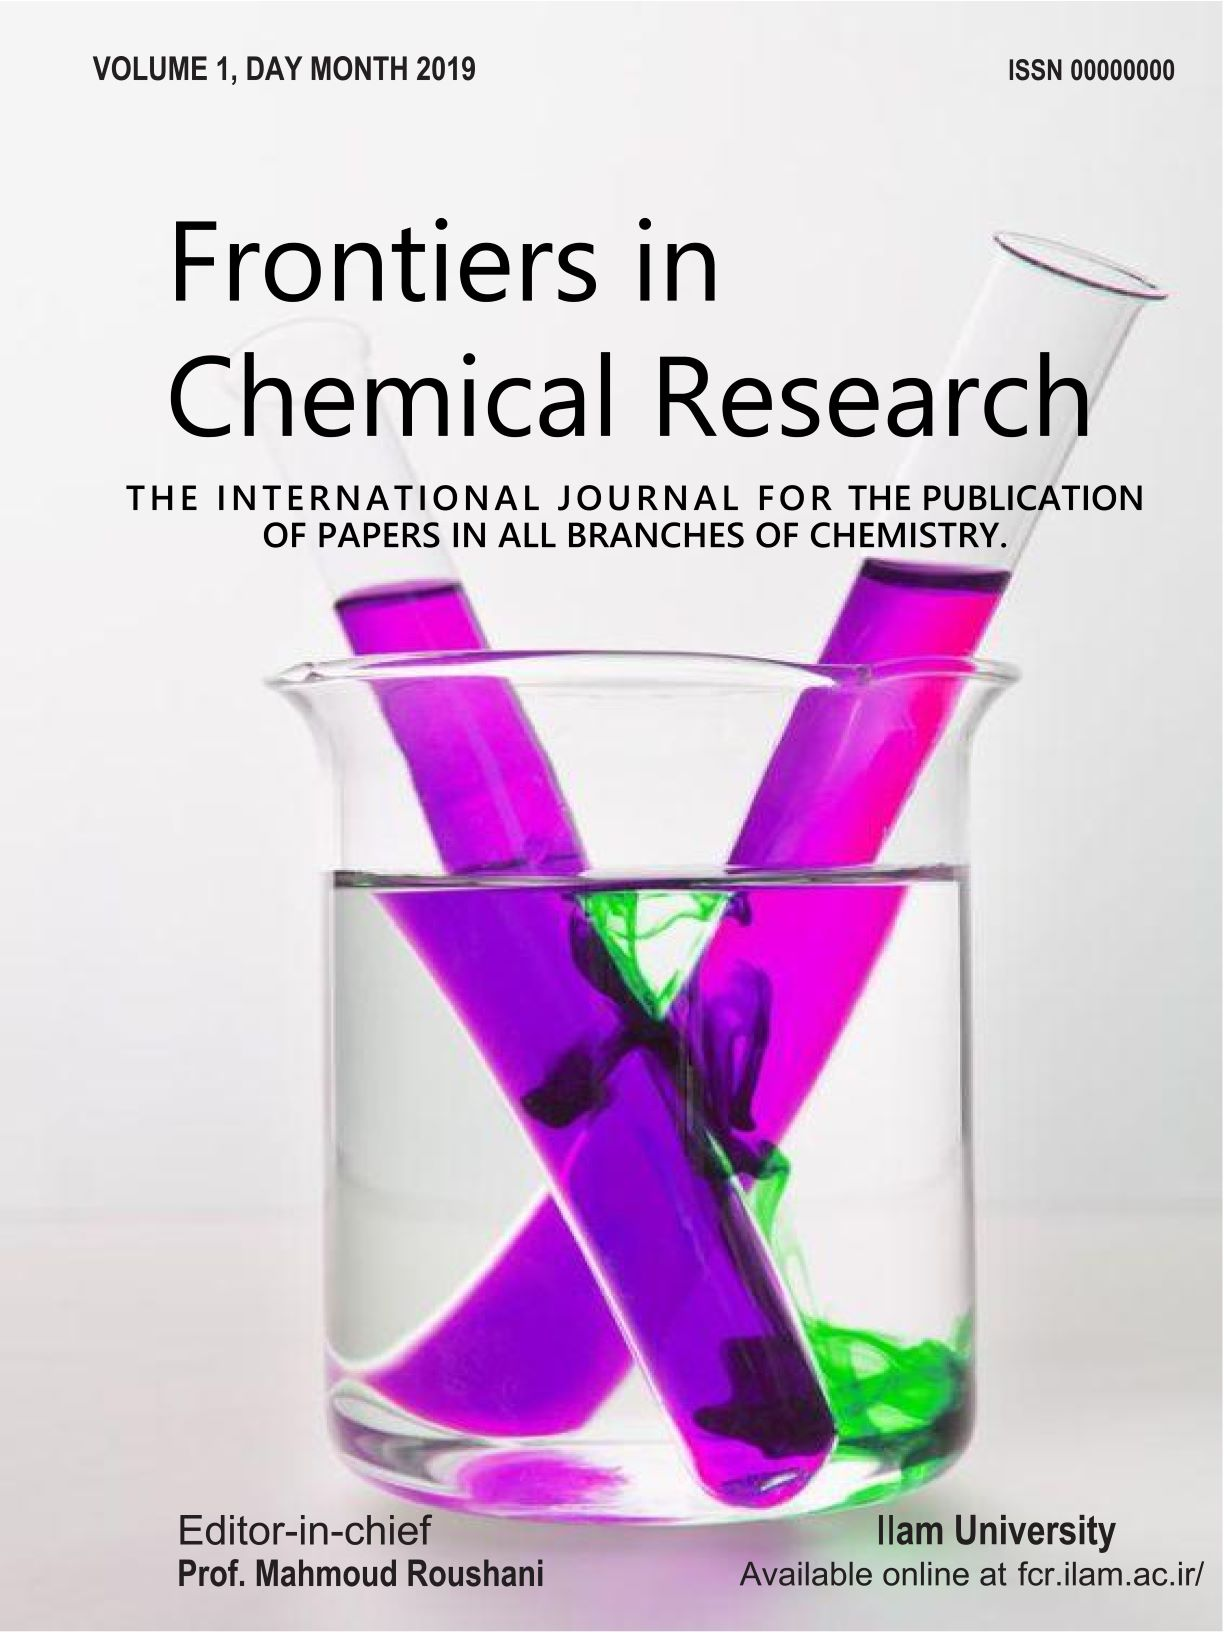 Frontiers in Chemical Research